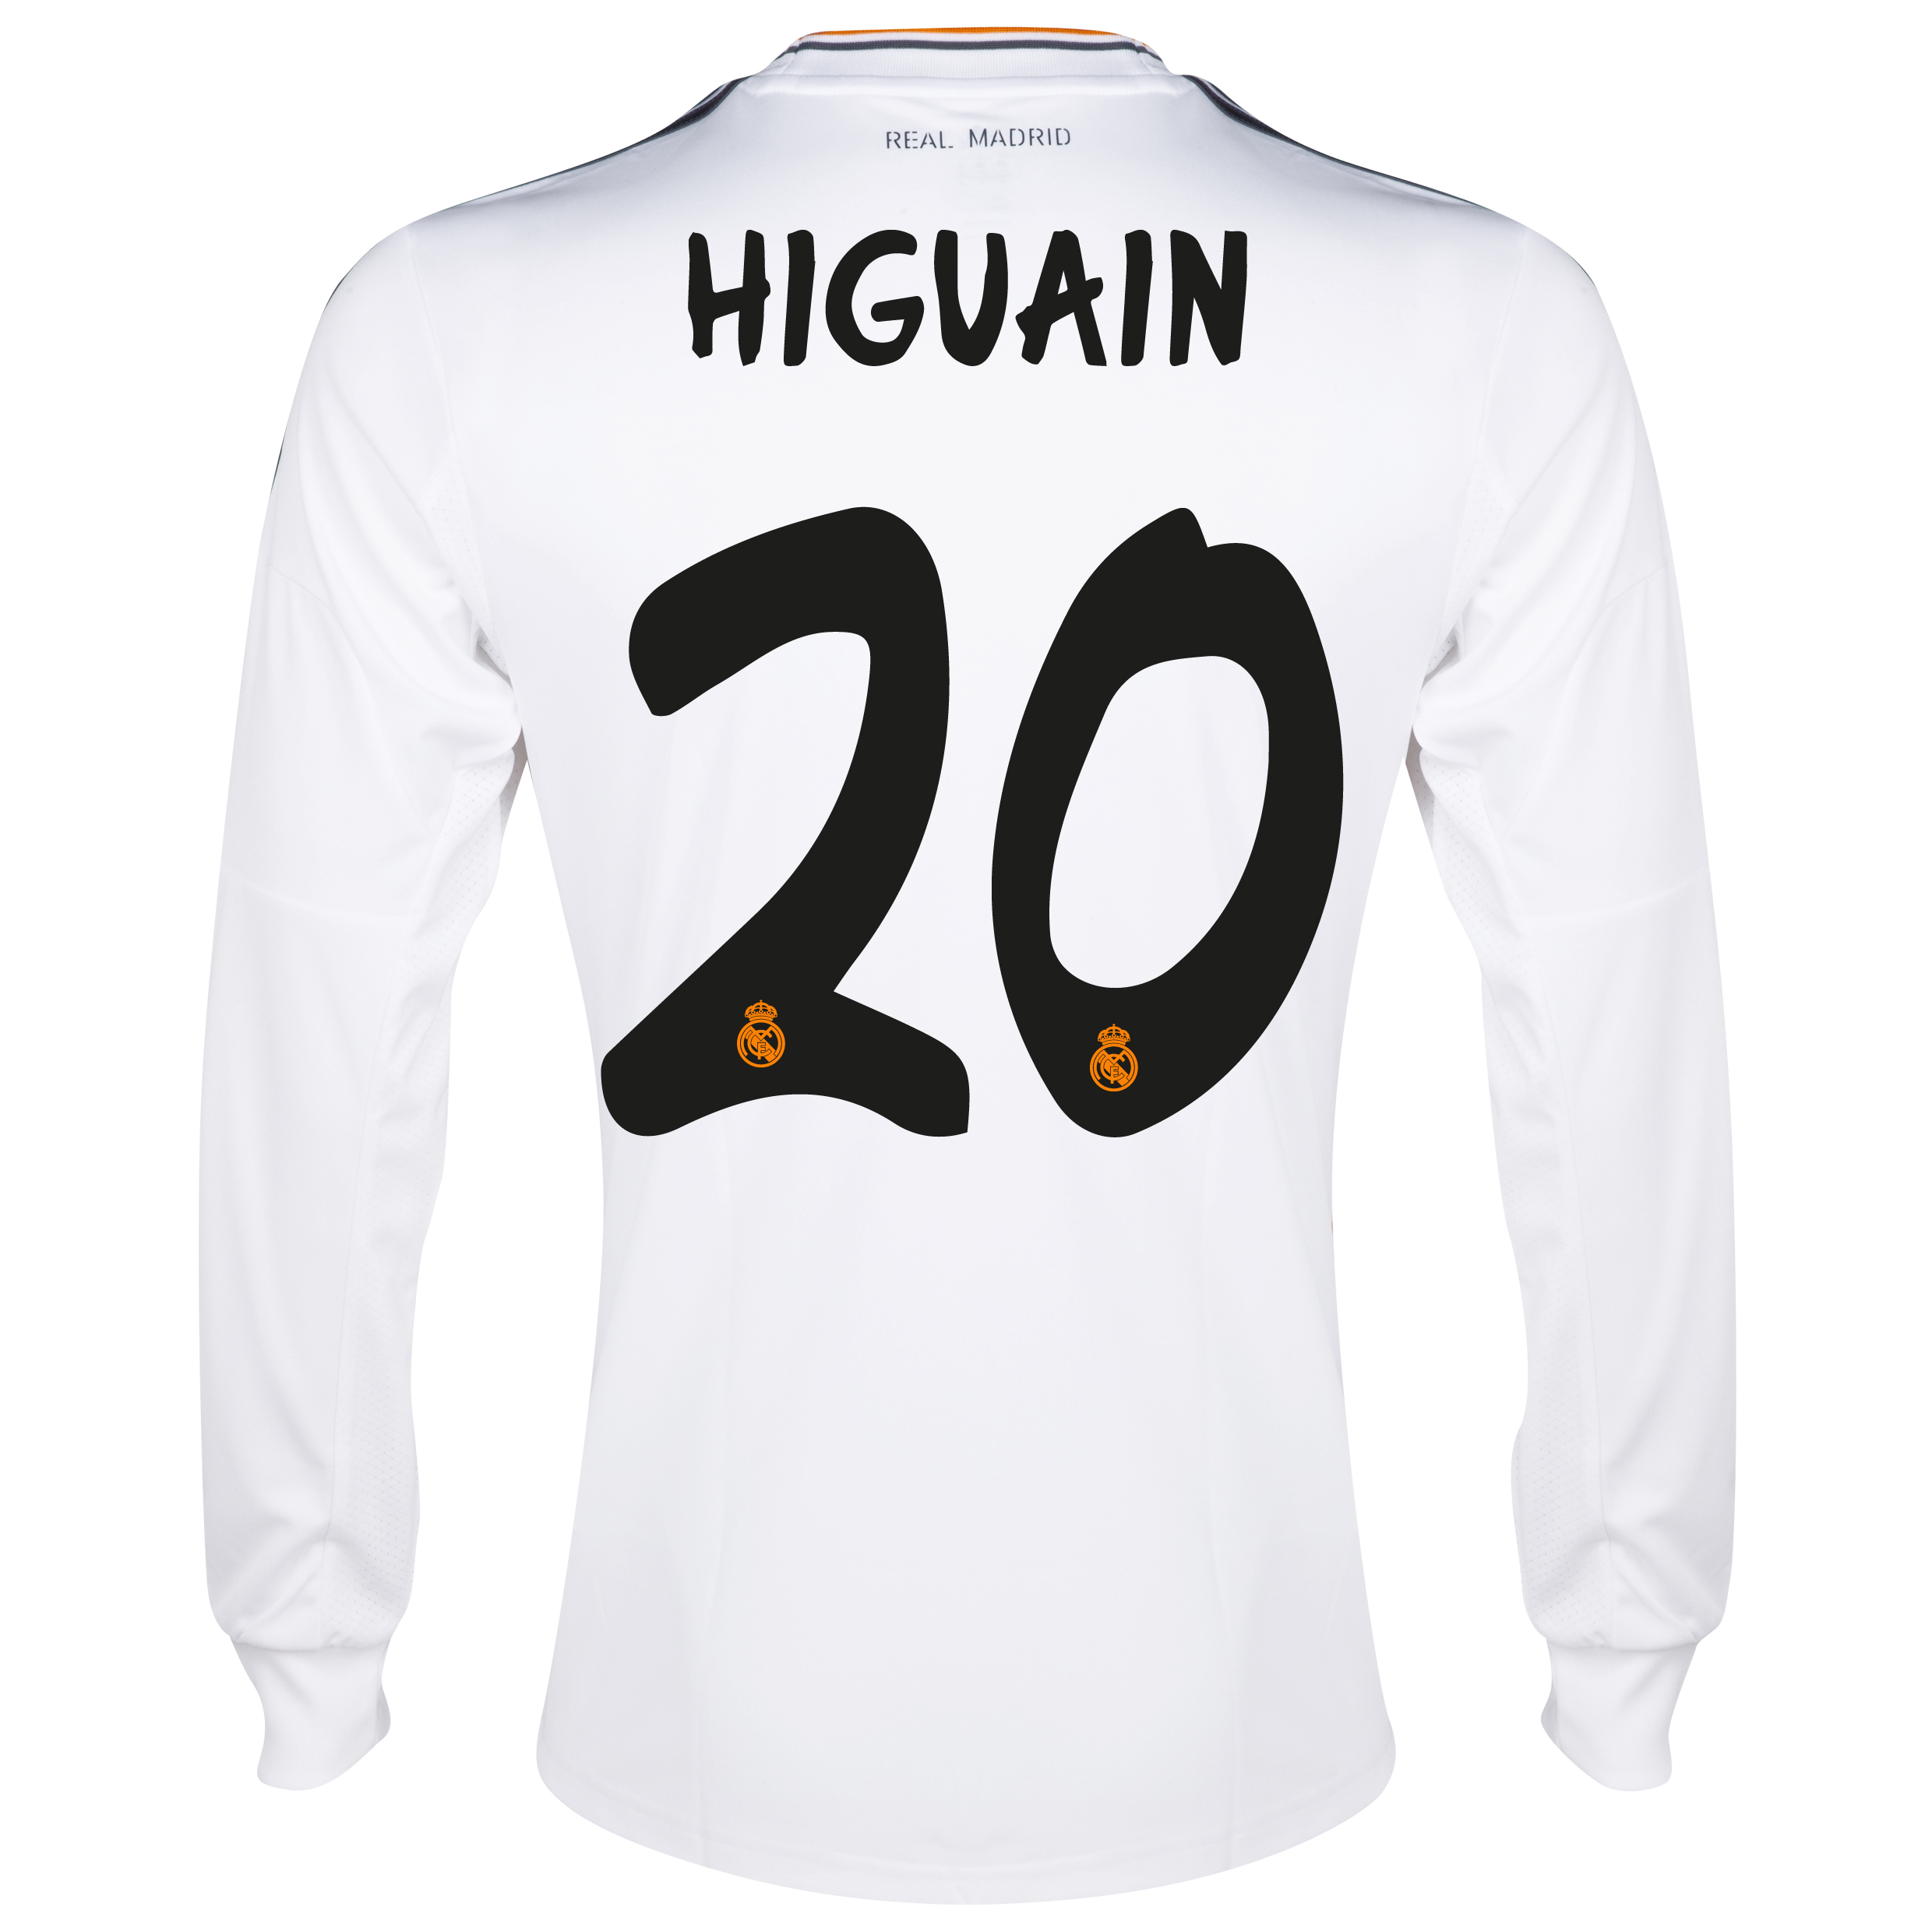 Real Madrid Home Shirt 2013/14 - Long Sleeve with Higuaín 20 printing